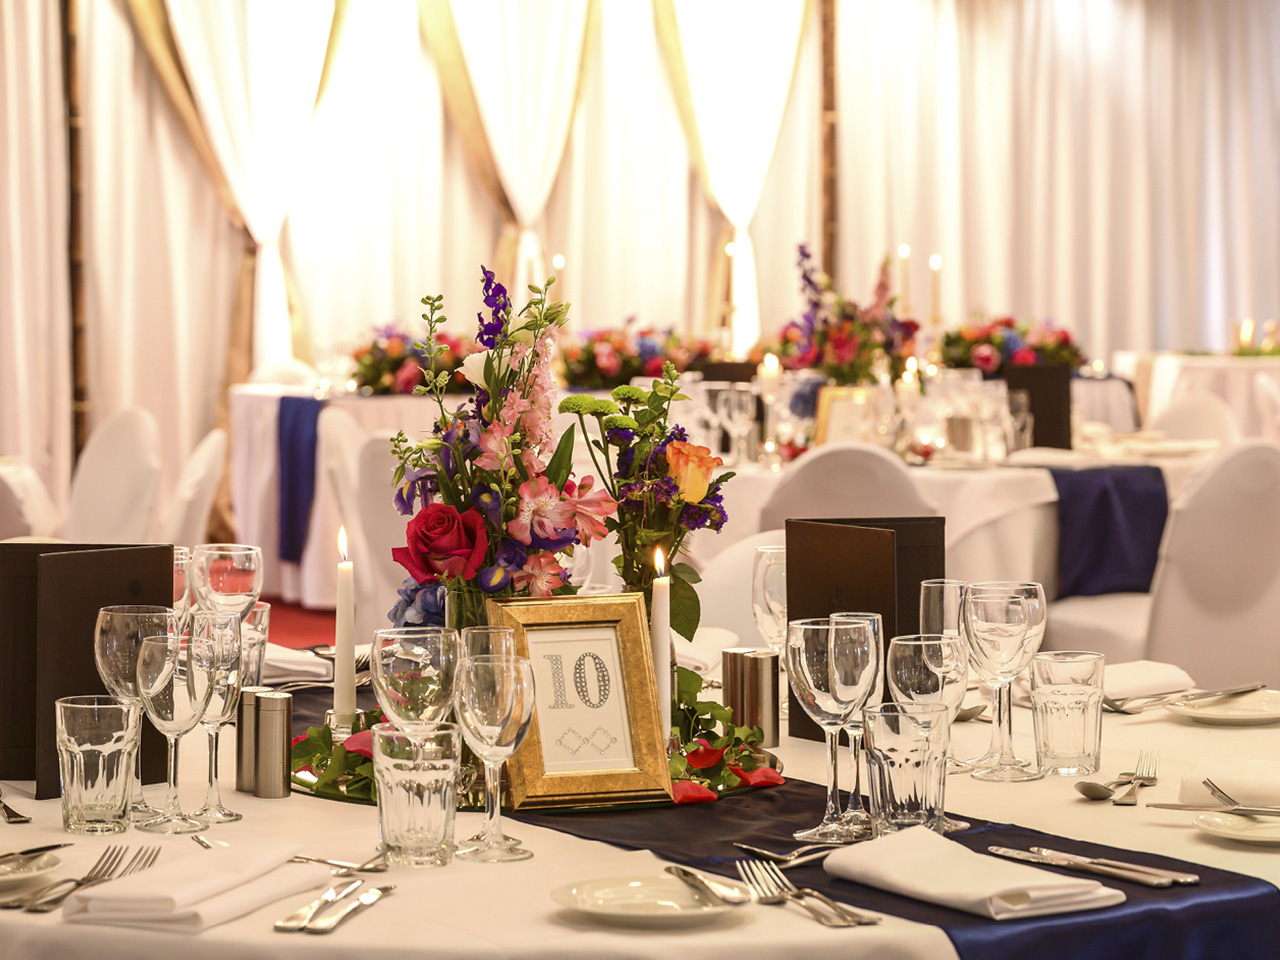 Flower Centerpieces With Table Number, Wine Glasses, Table Napkins, Spoon And Forks And Stage Behind